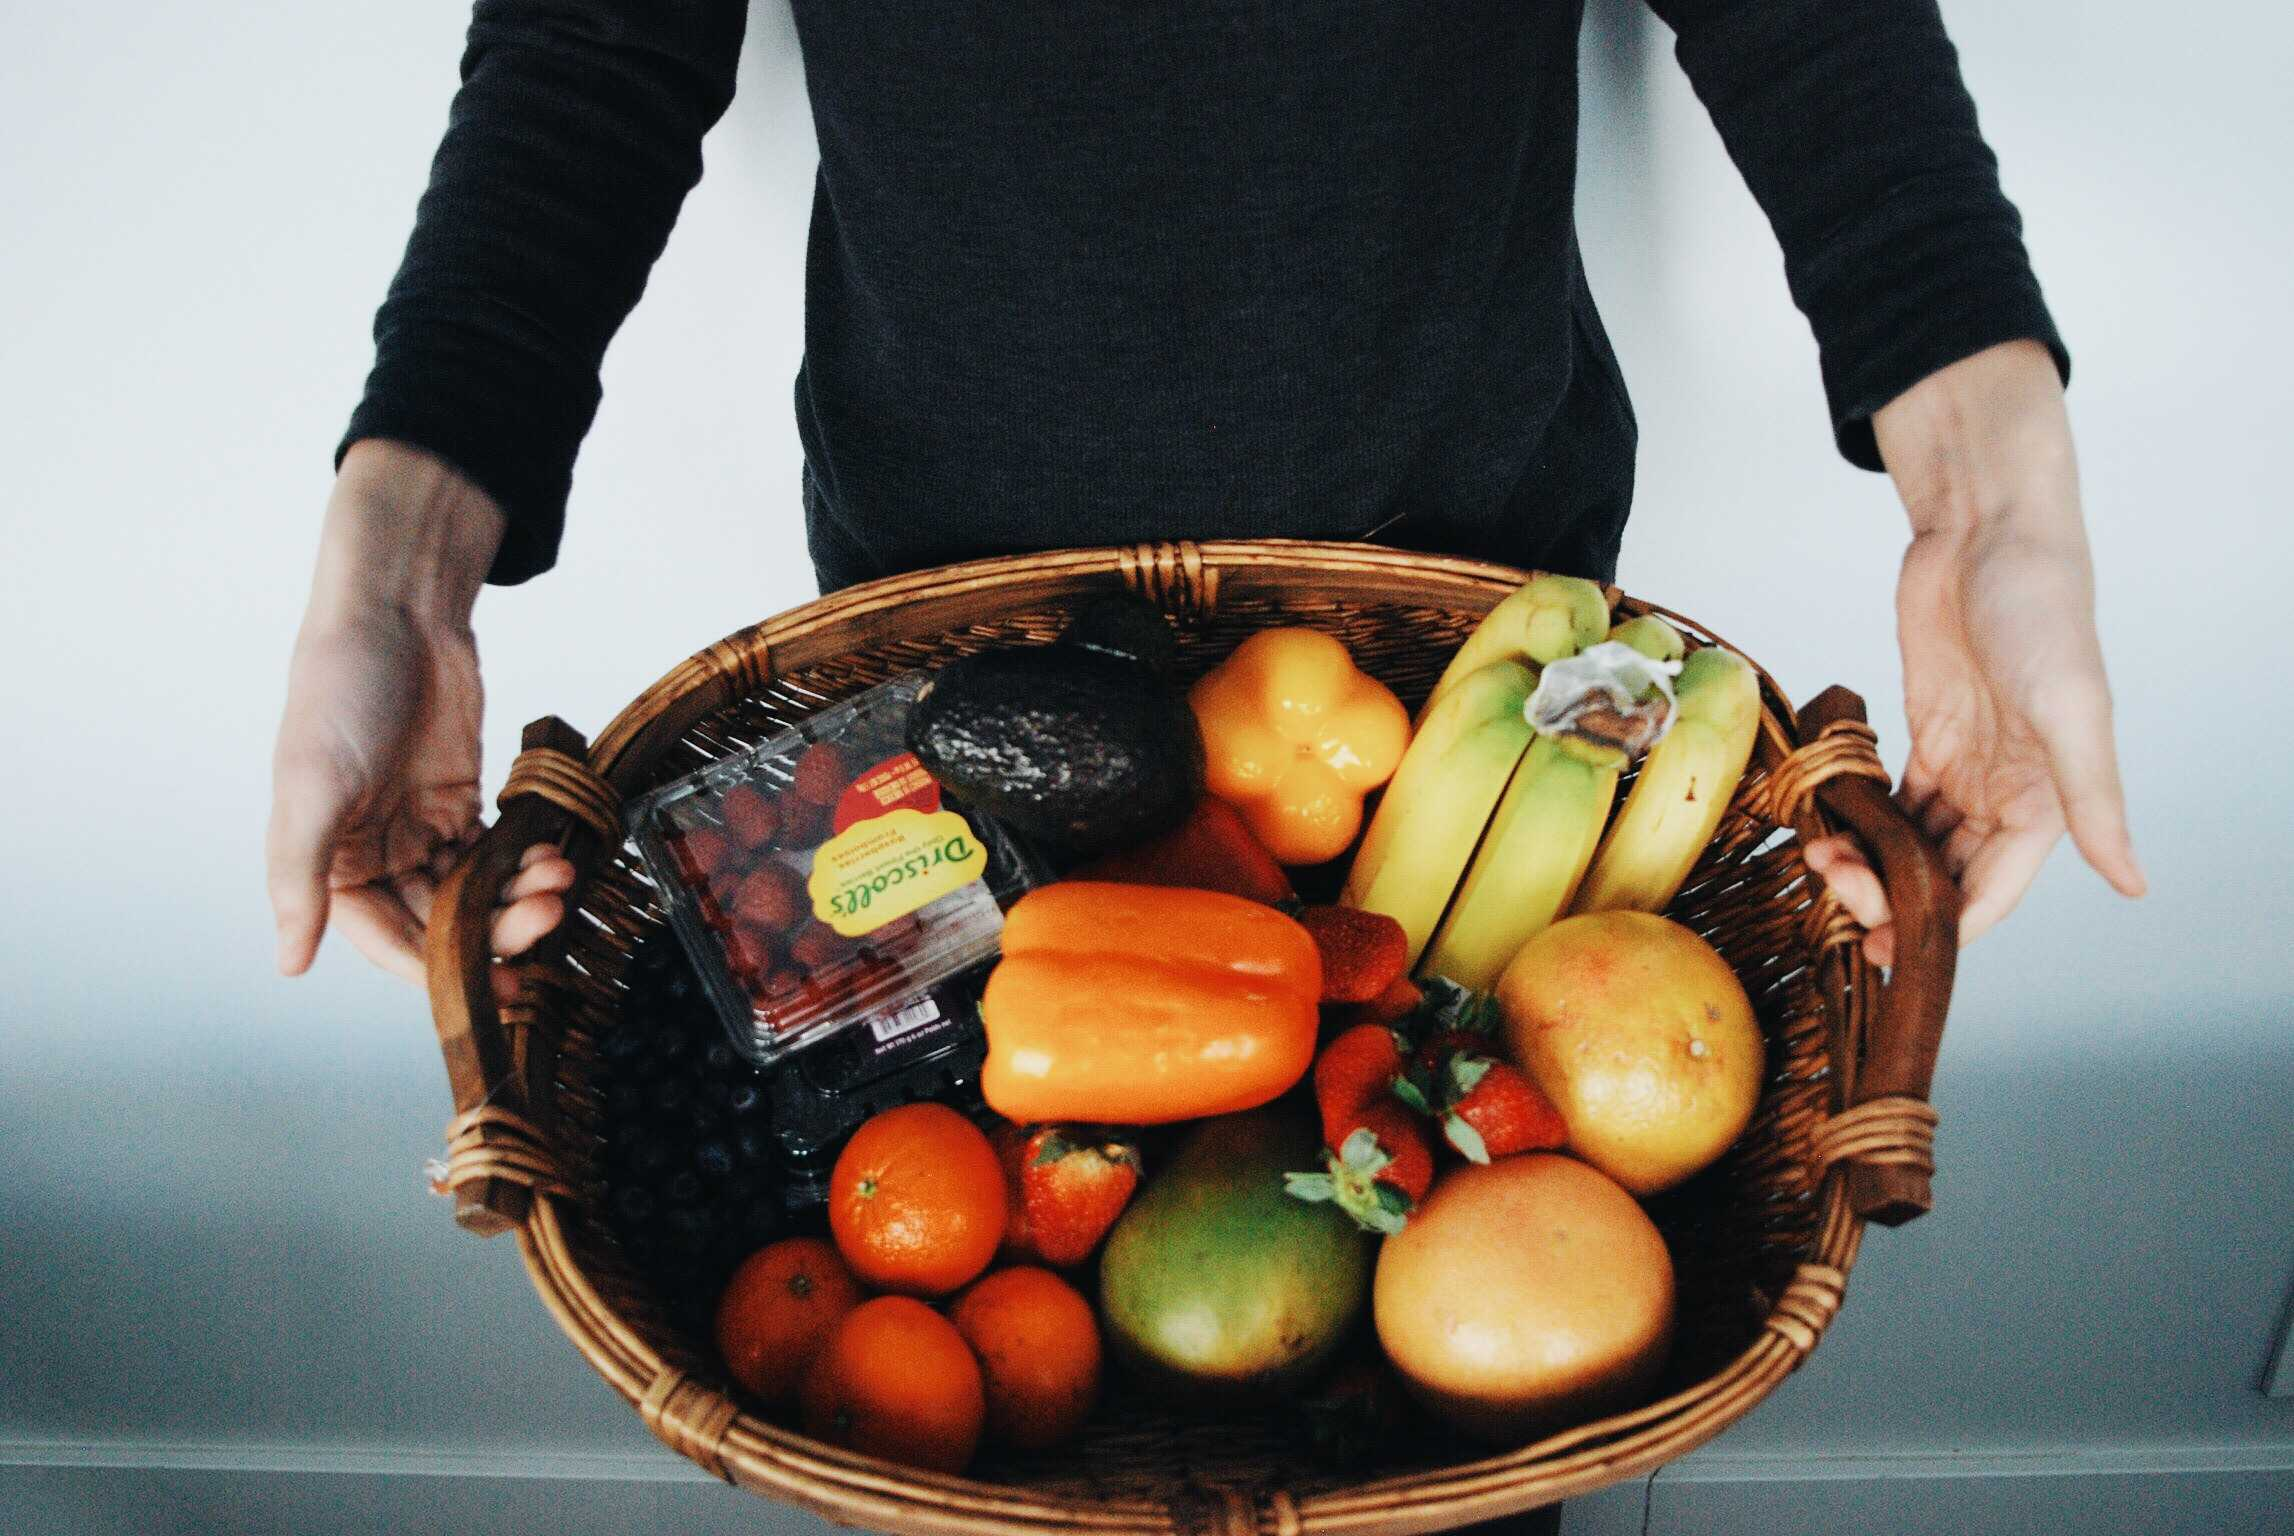 Jack Nicholson holds a basket with a variety of fruits and vegetables that could be included with every meal.